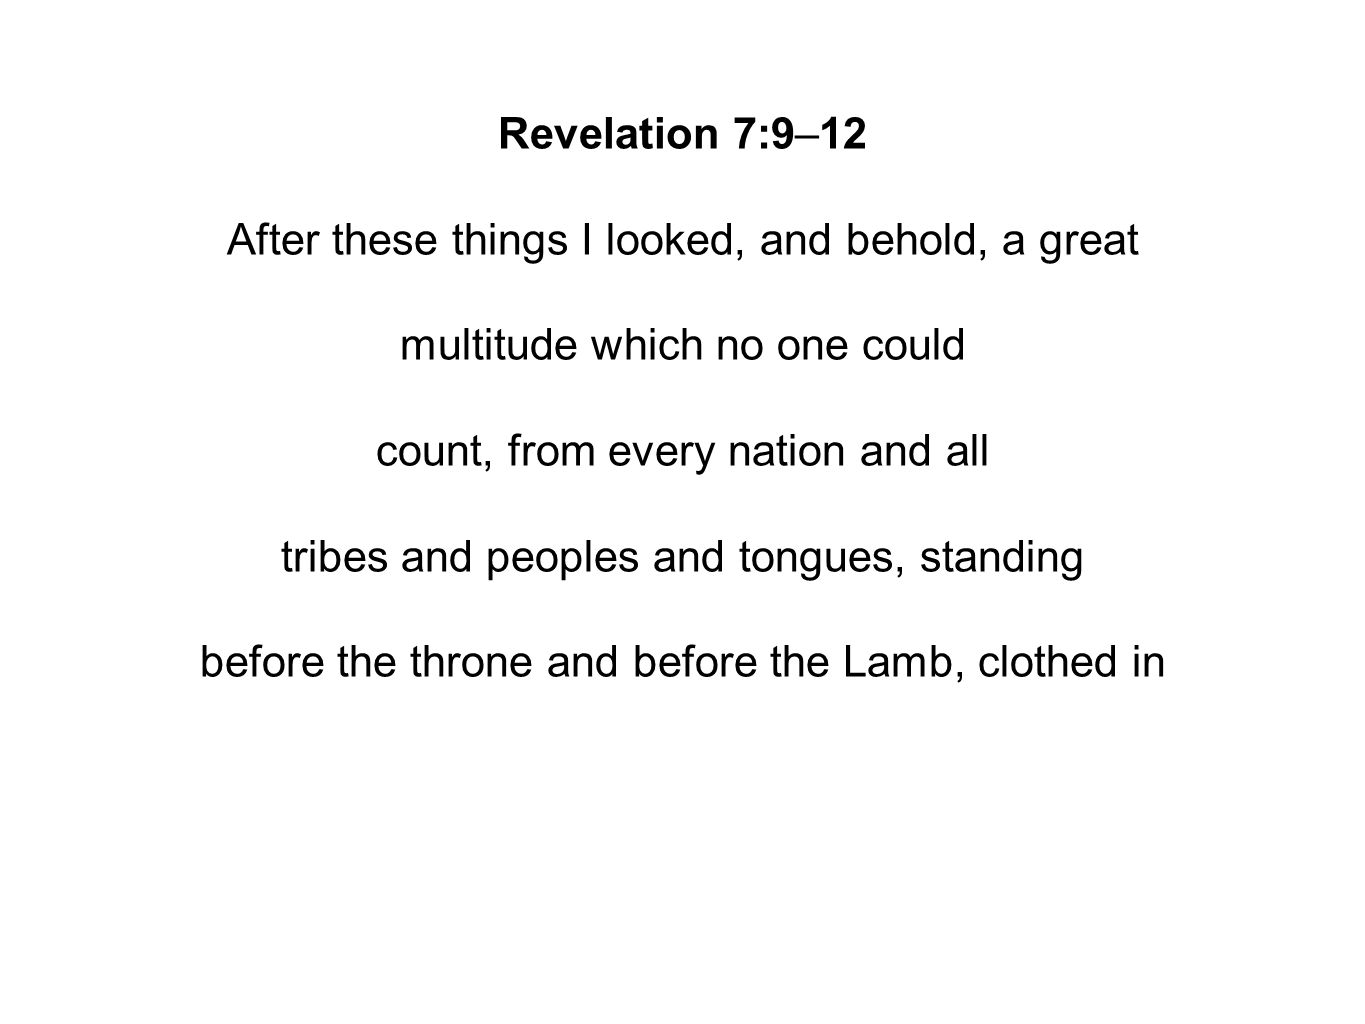 Revelation 7:9–12 After these things I looked, and behold, a great multitude which no one could count, from every nation and all tribes and peoples and tongues, standing before the throne and before the Lamb, clothed in